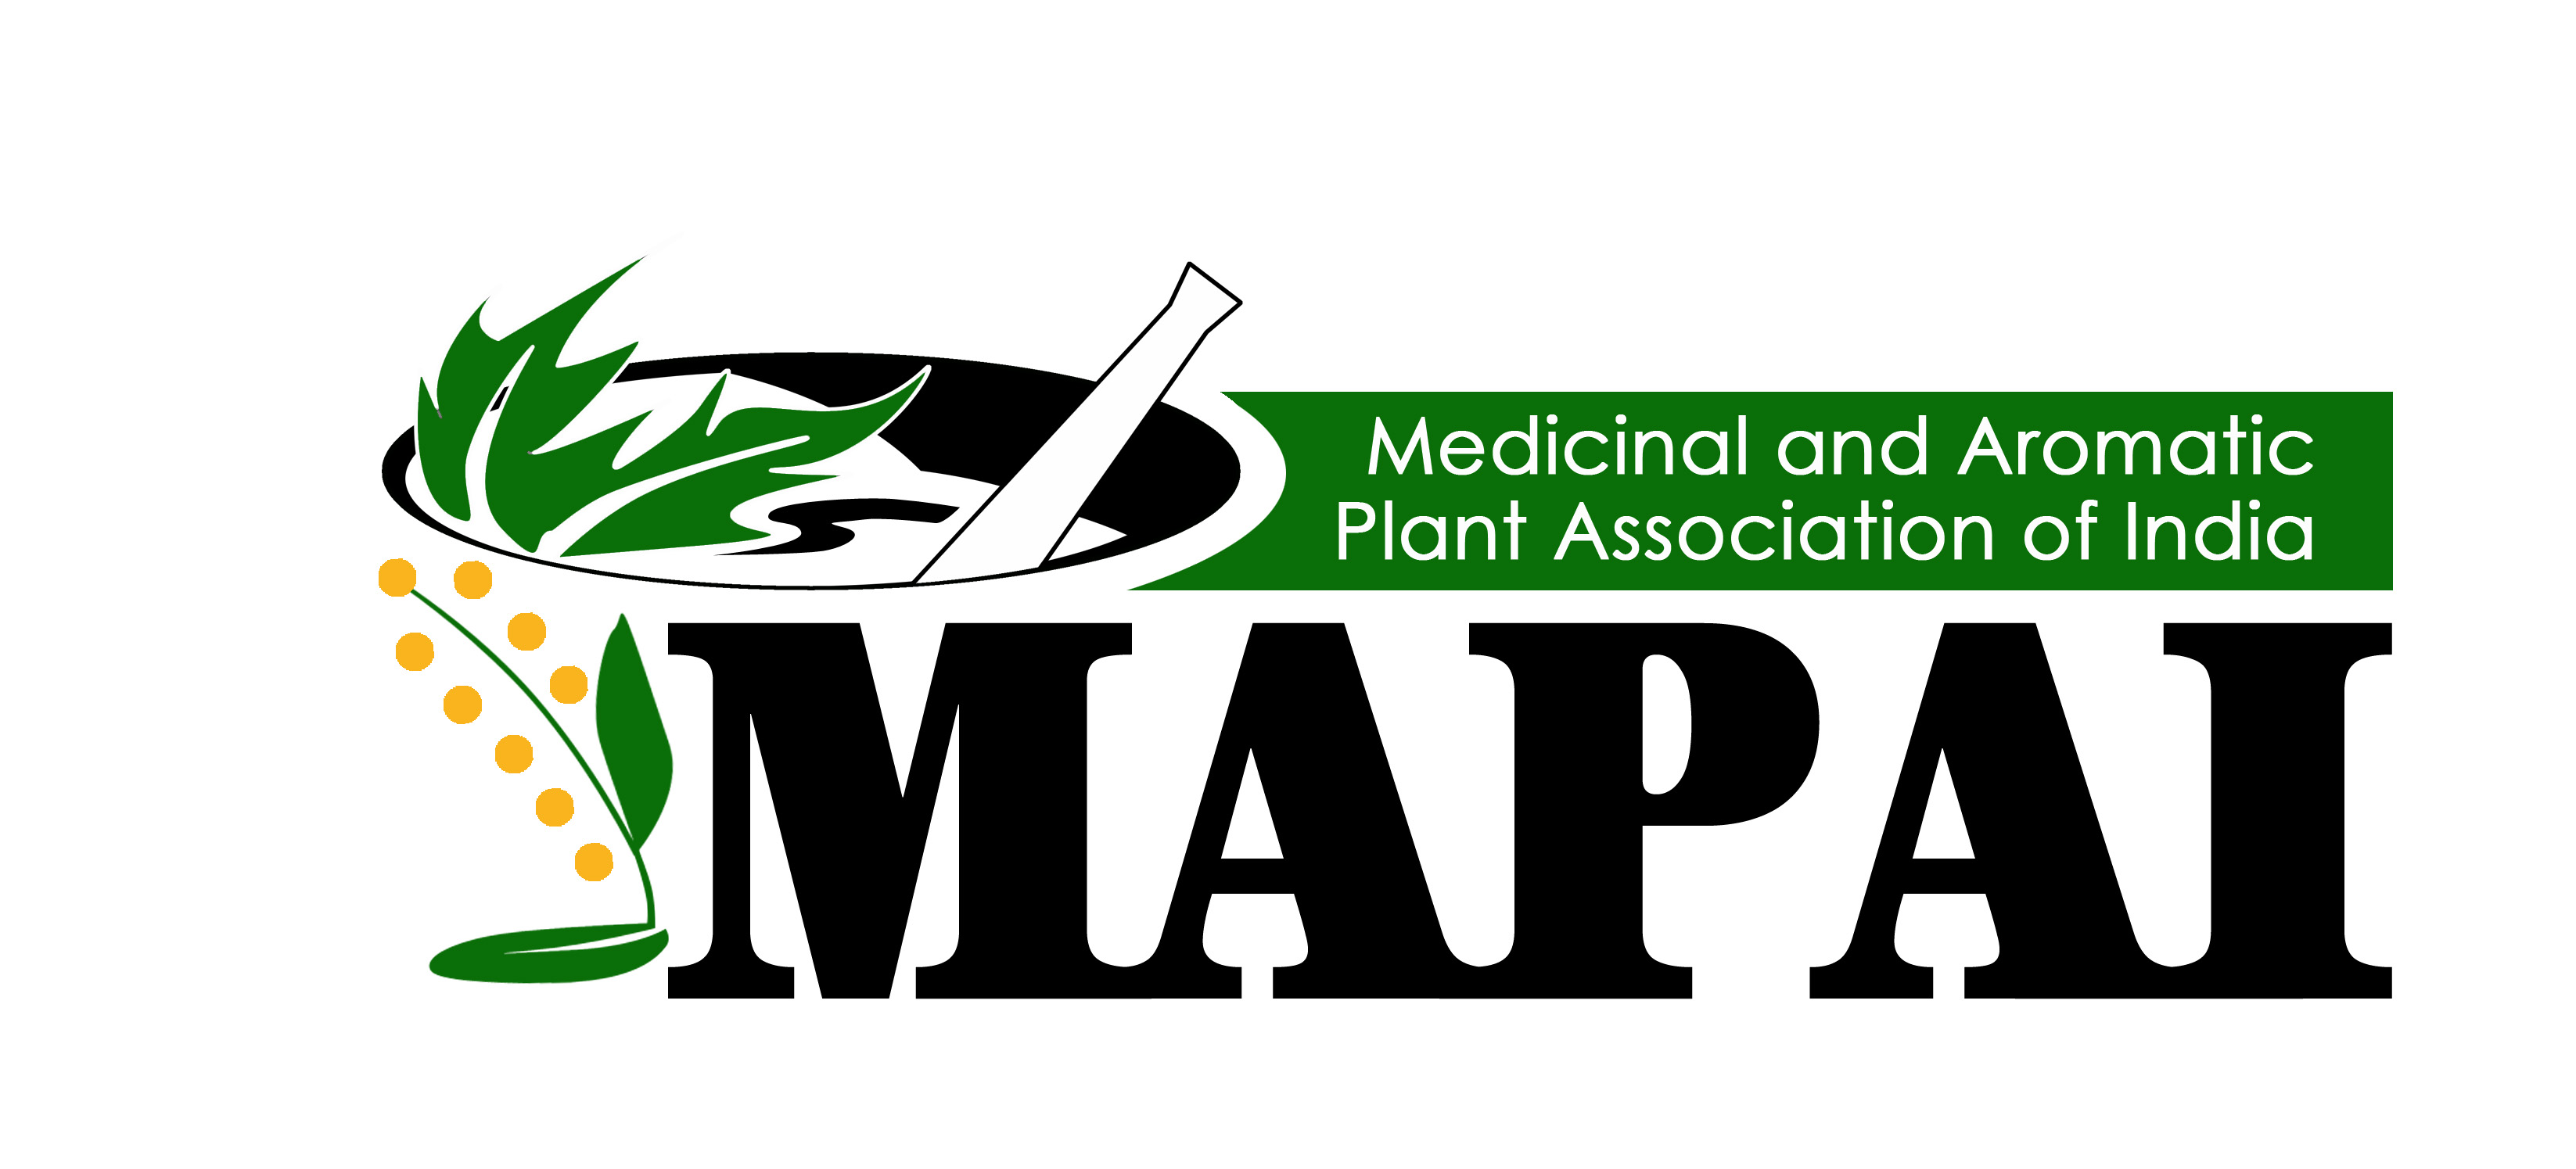 Medicinal and Aromatic Plants Association of India